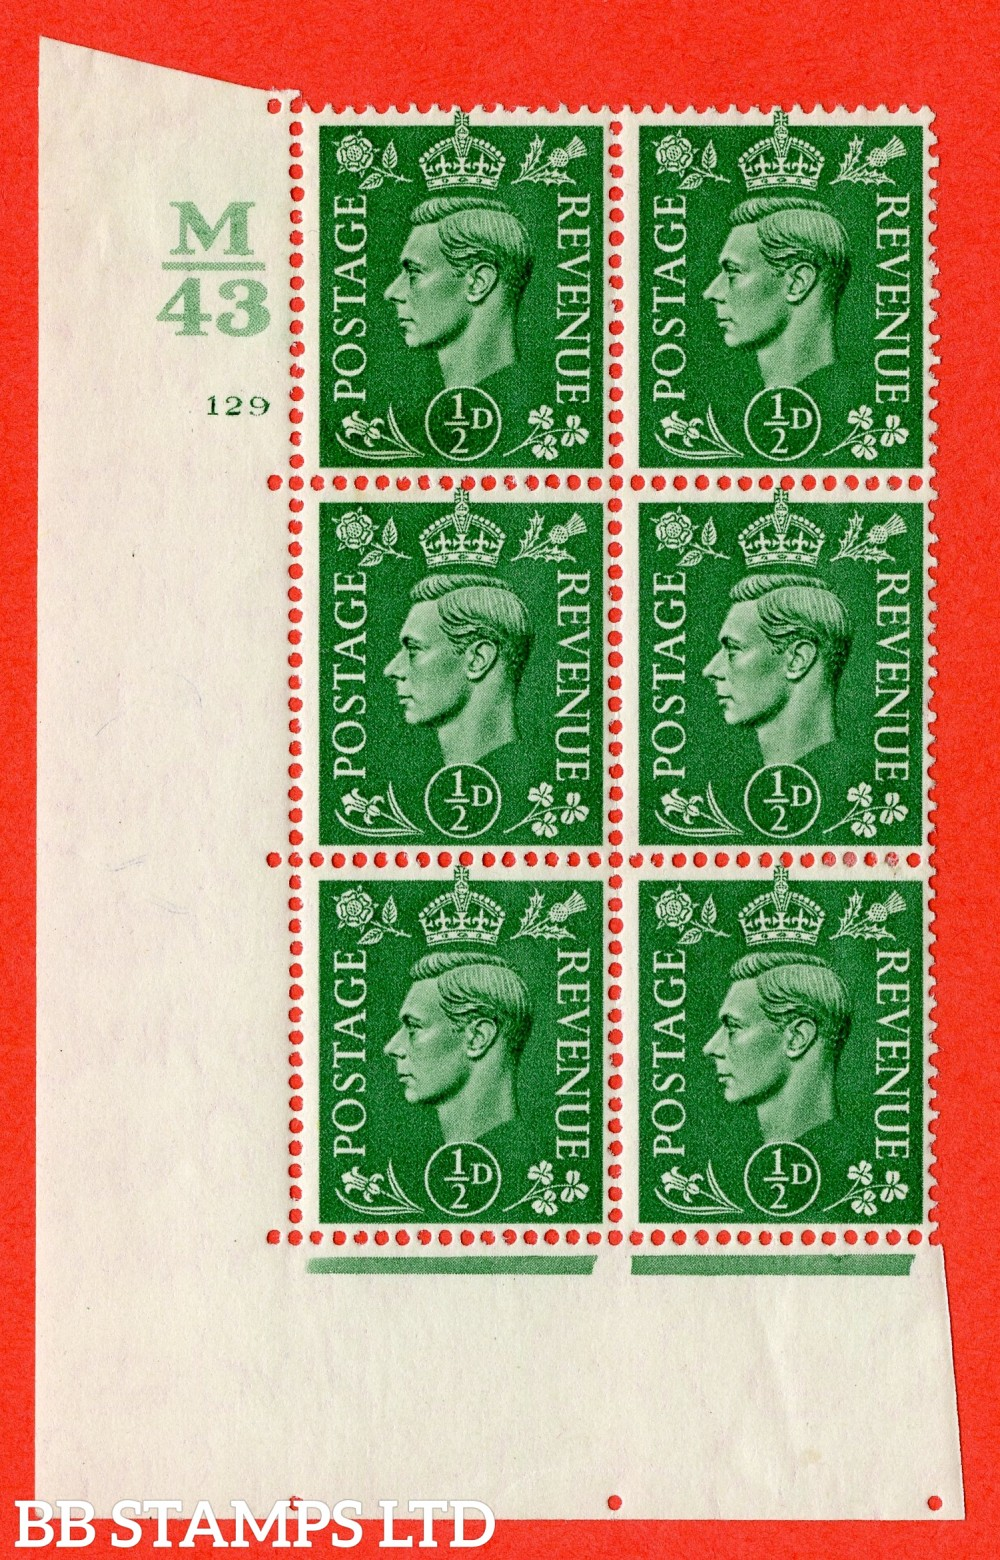 "SG. 485. Q2. ½d Pale Green. A fine mounted mint "" Control M43 cylinder 128 no dot "" block of 6 with perf type 5 E/I with marginal rule."